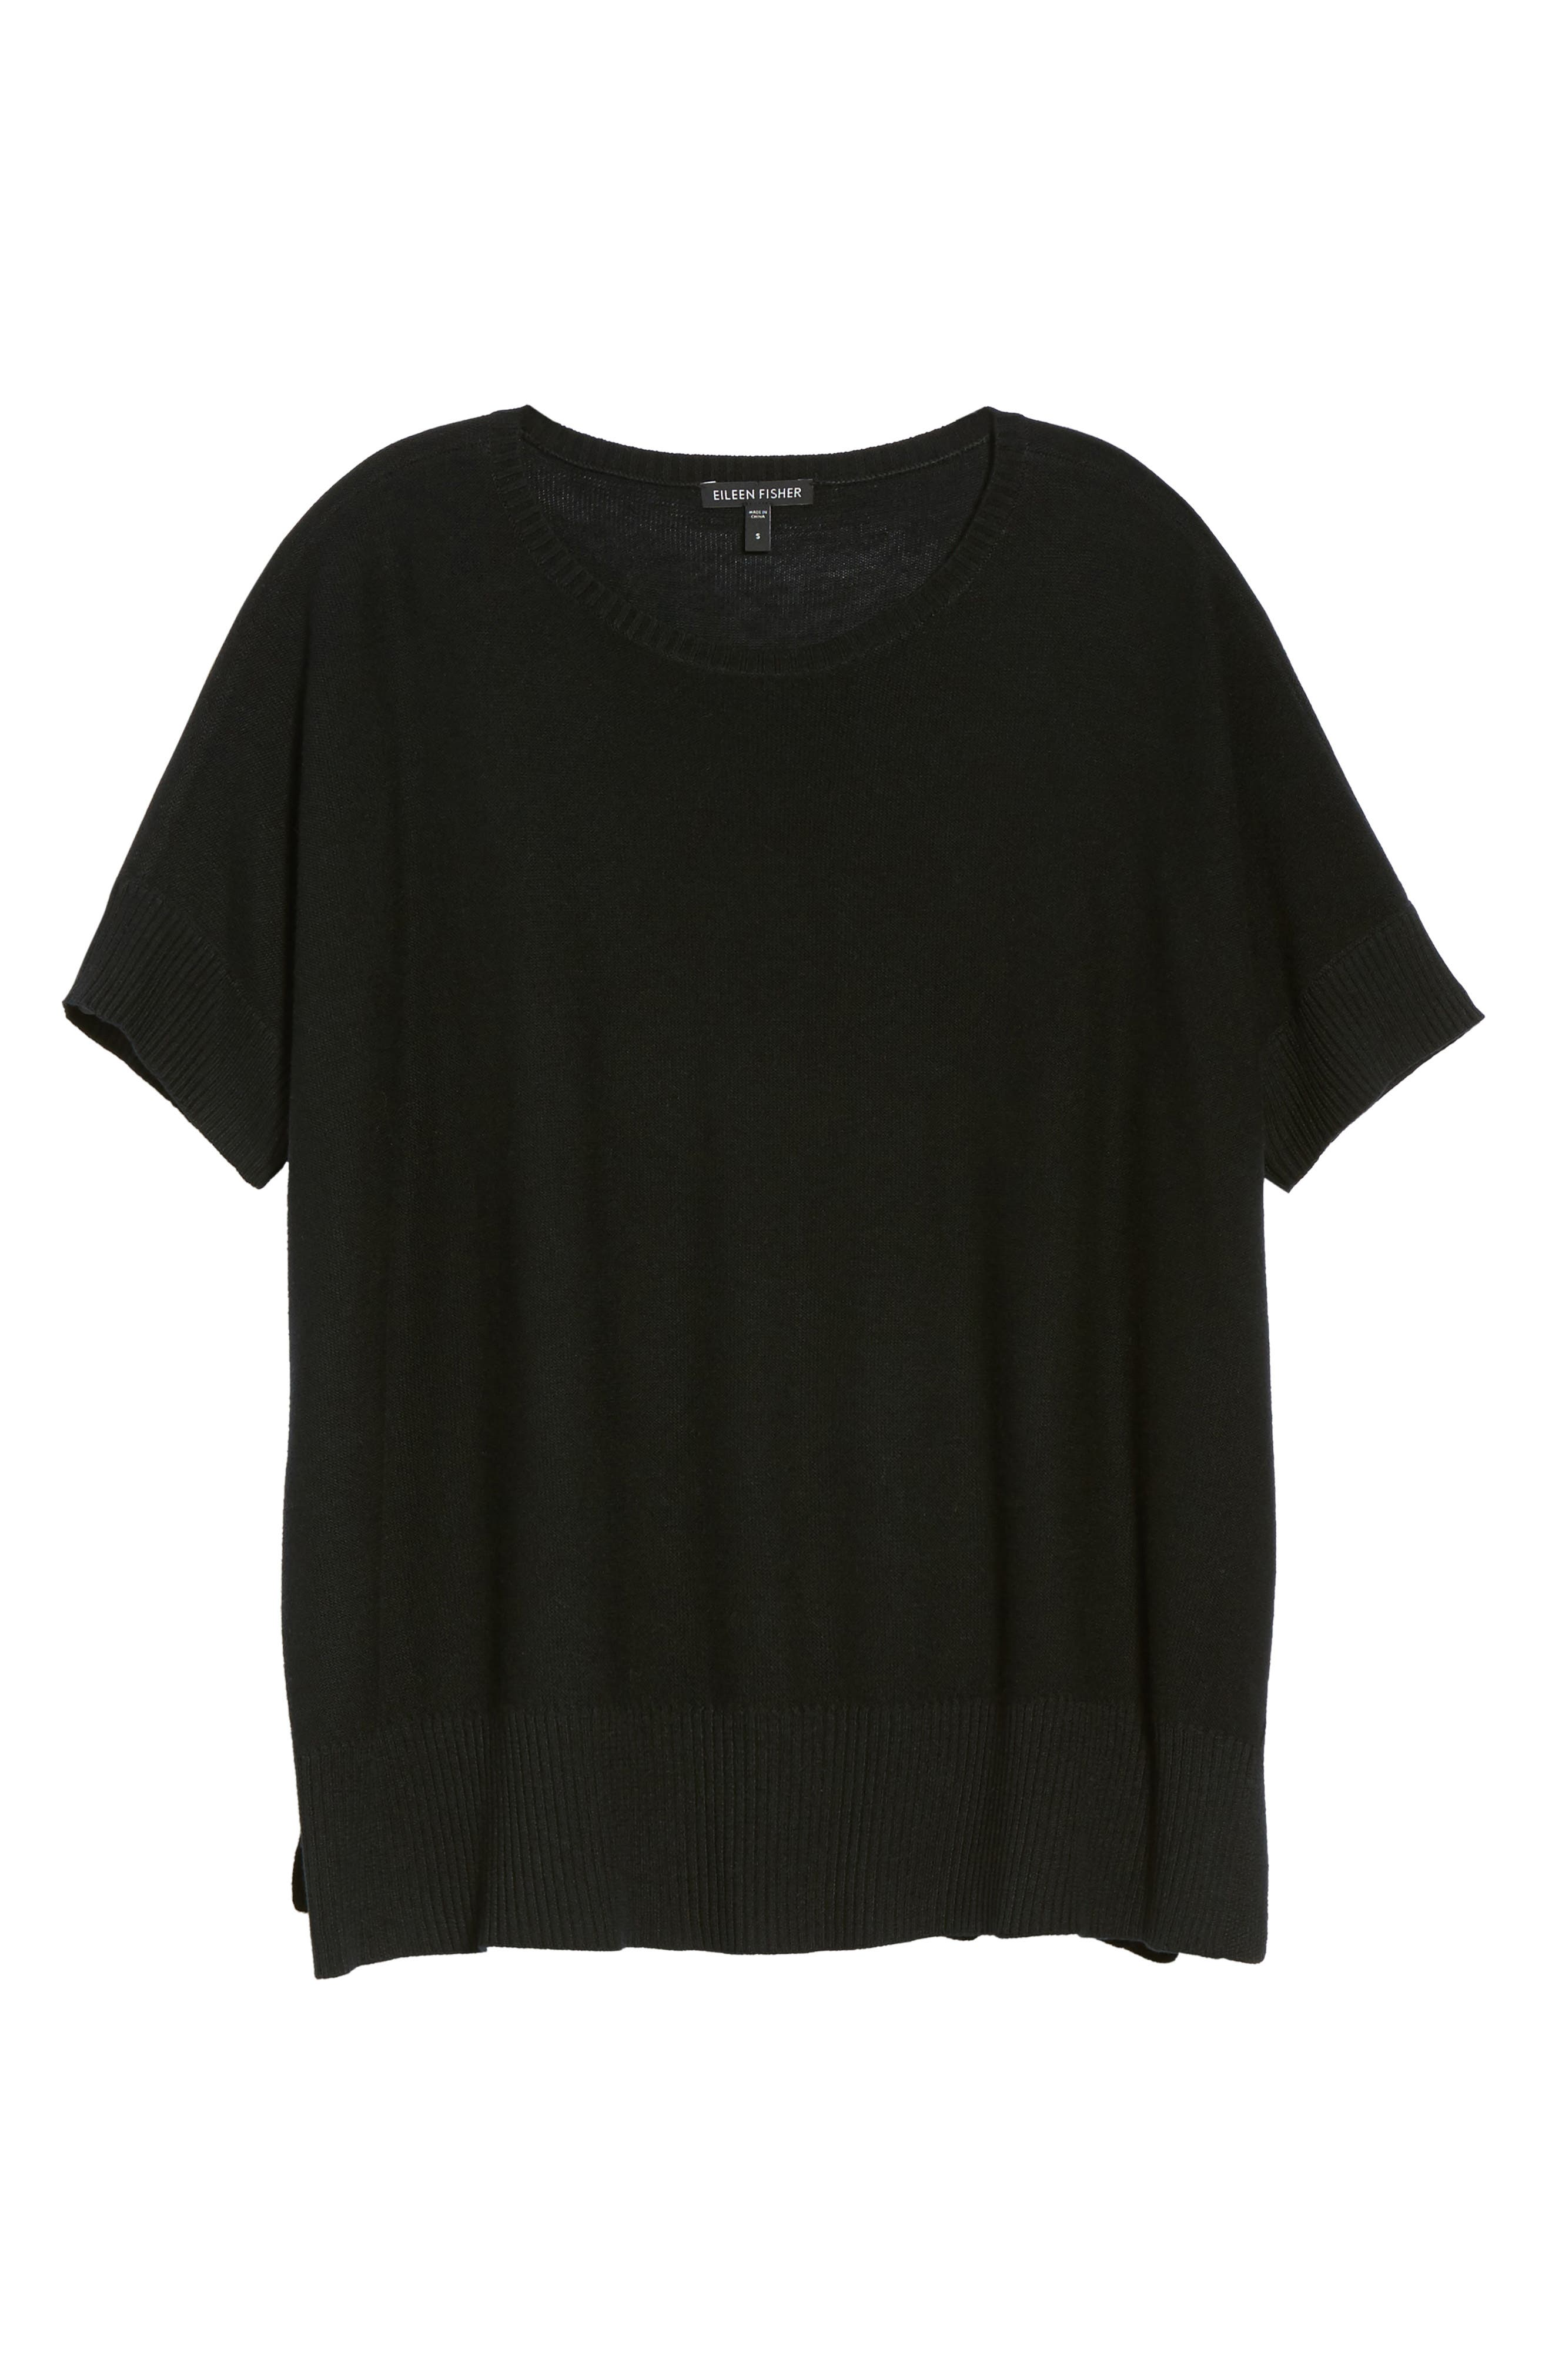 Tencel<sup>®</sup> & Merino Wool Top,                             Alternate thumbnail 6, color,                             001